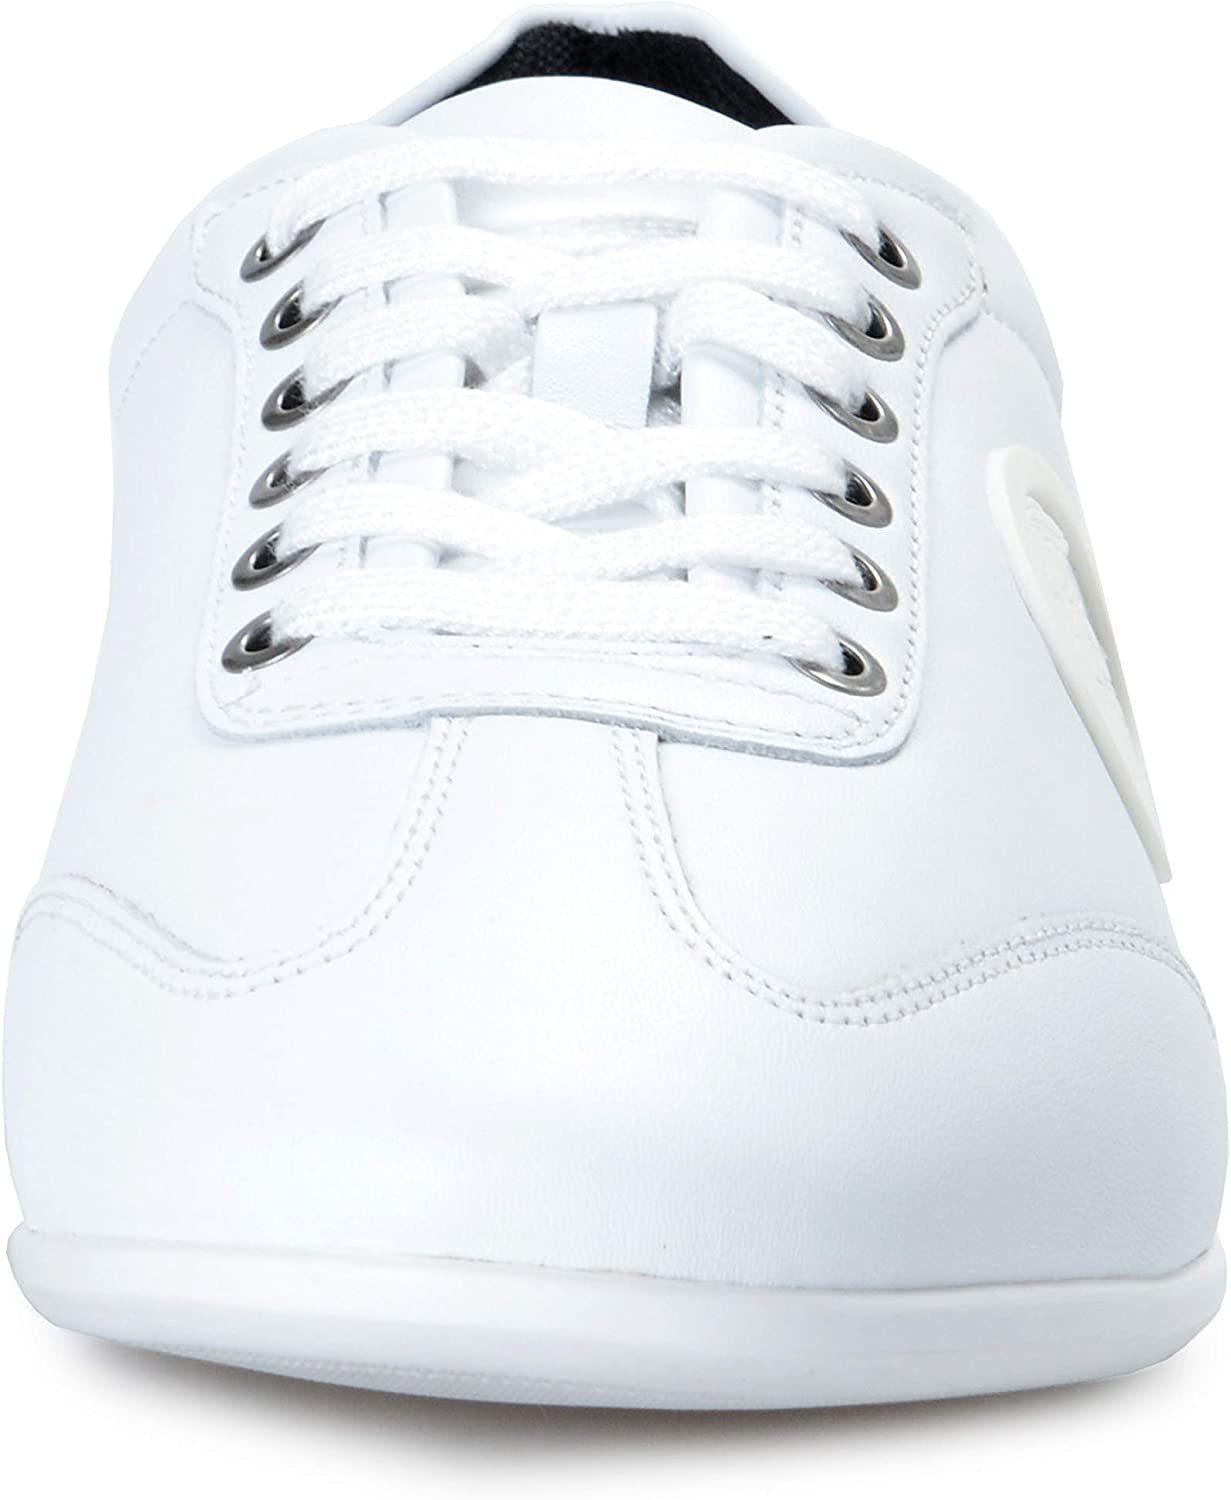 Versace Collection Mens White Leather Fashion Sneakers Shoes Sz US 10 IT 43